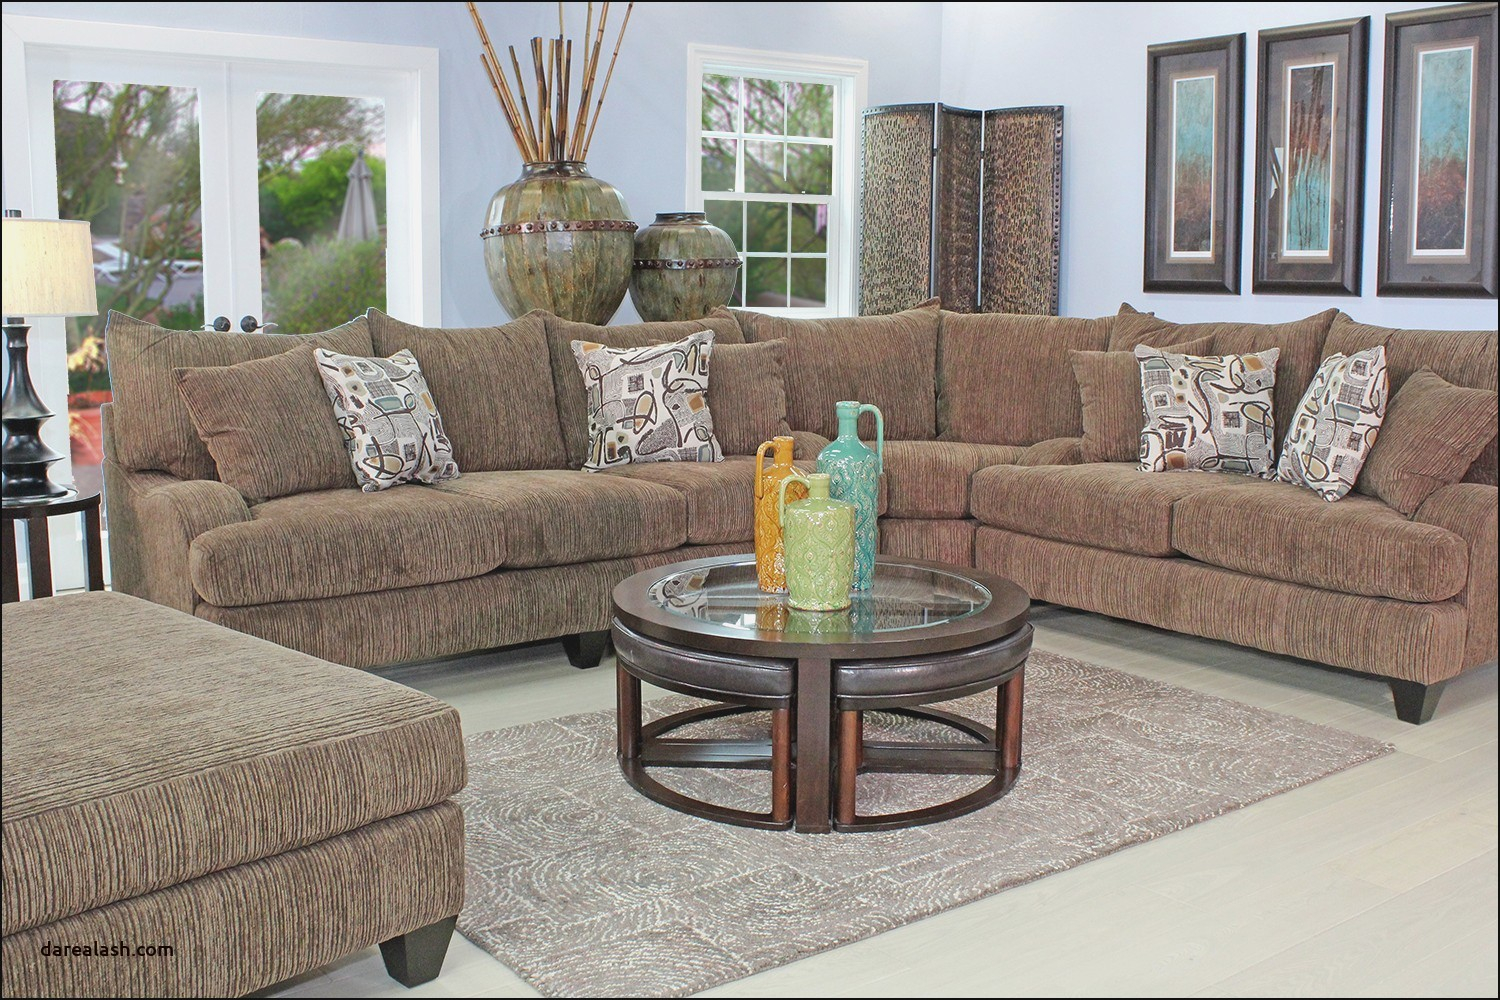 Luxury Used Living Room Furniture Darealash with regard to Used Living Room Sets